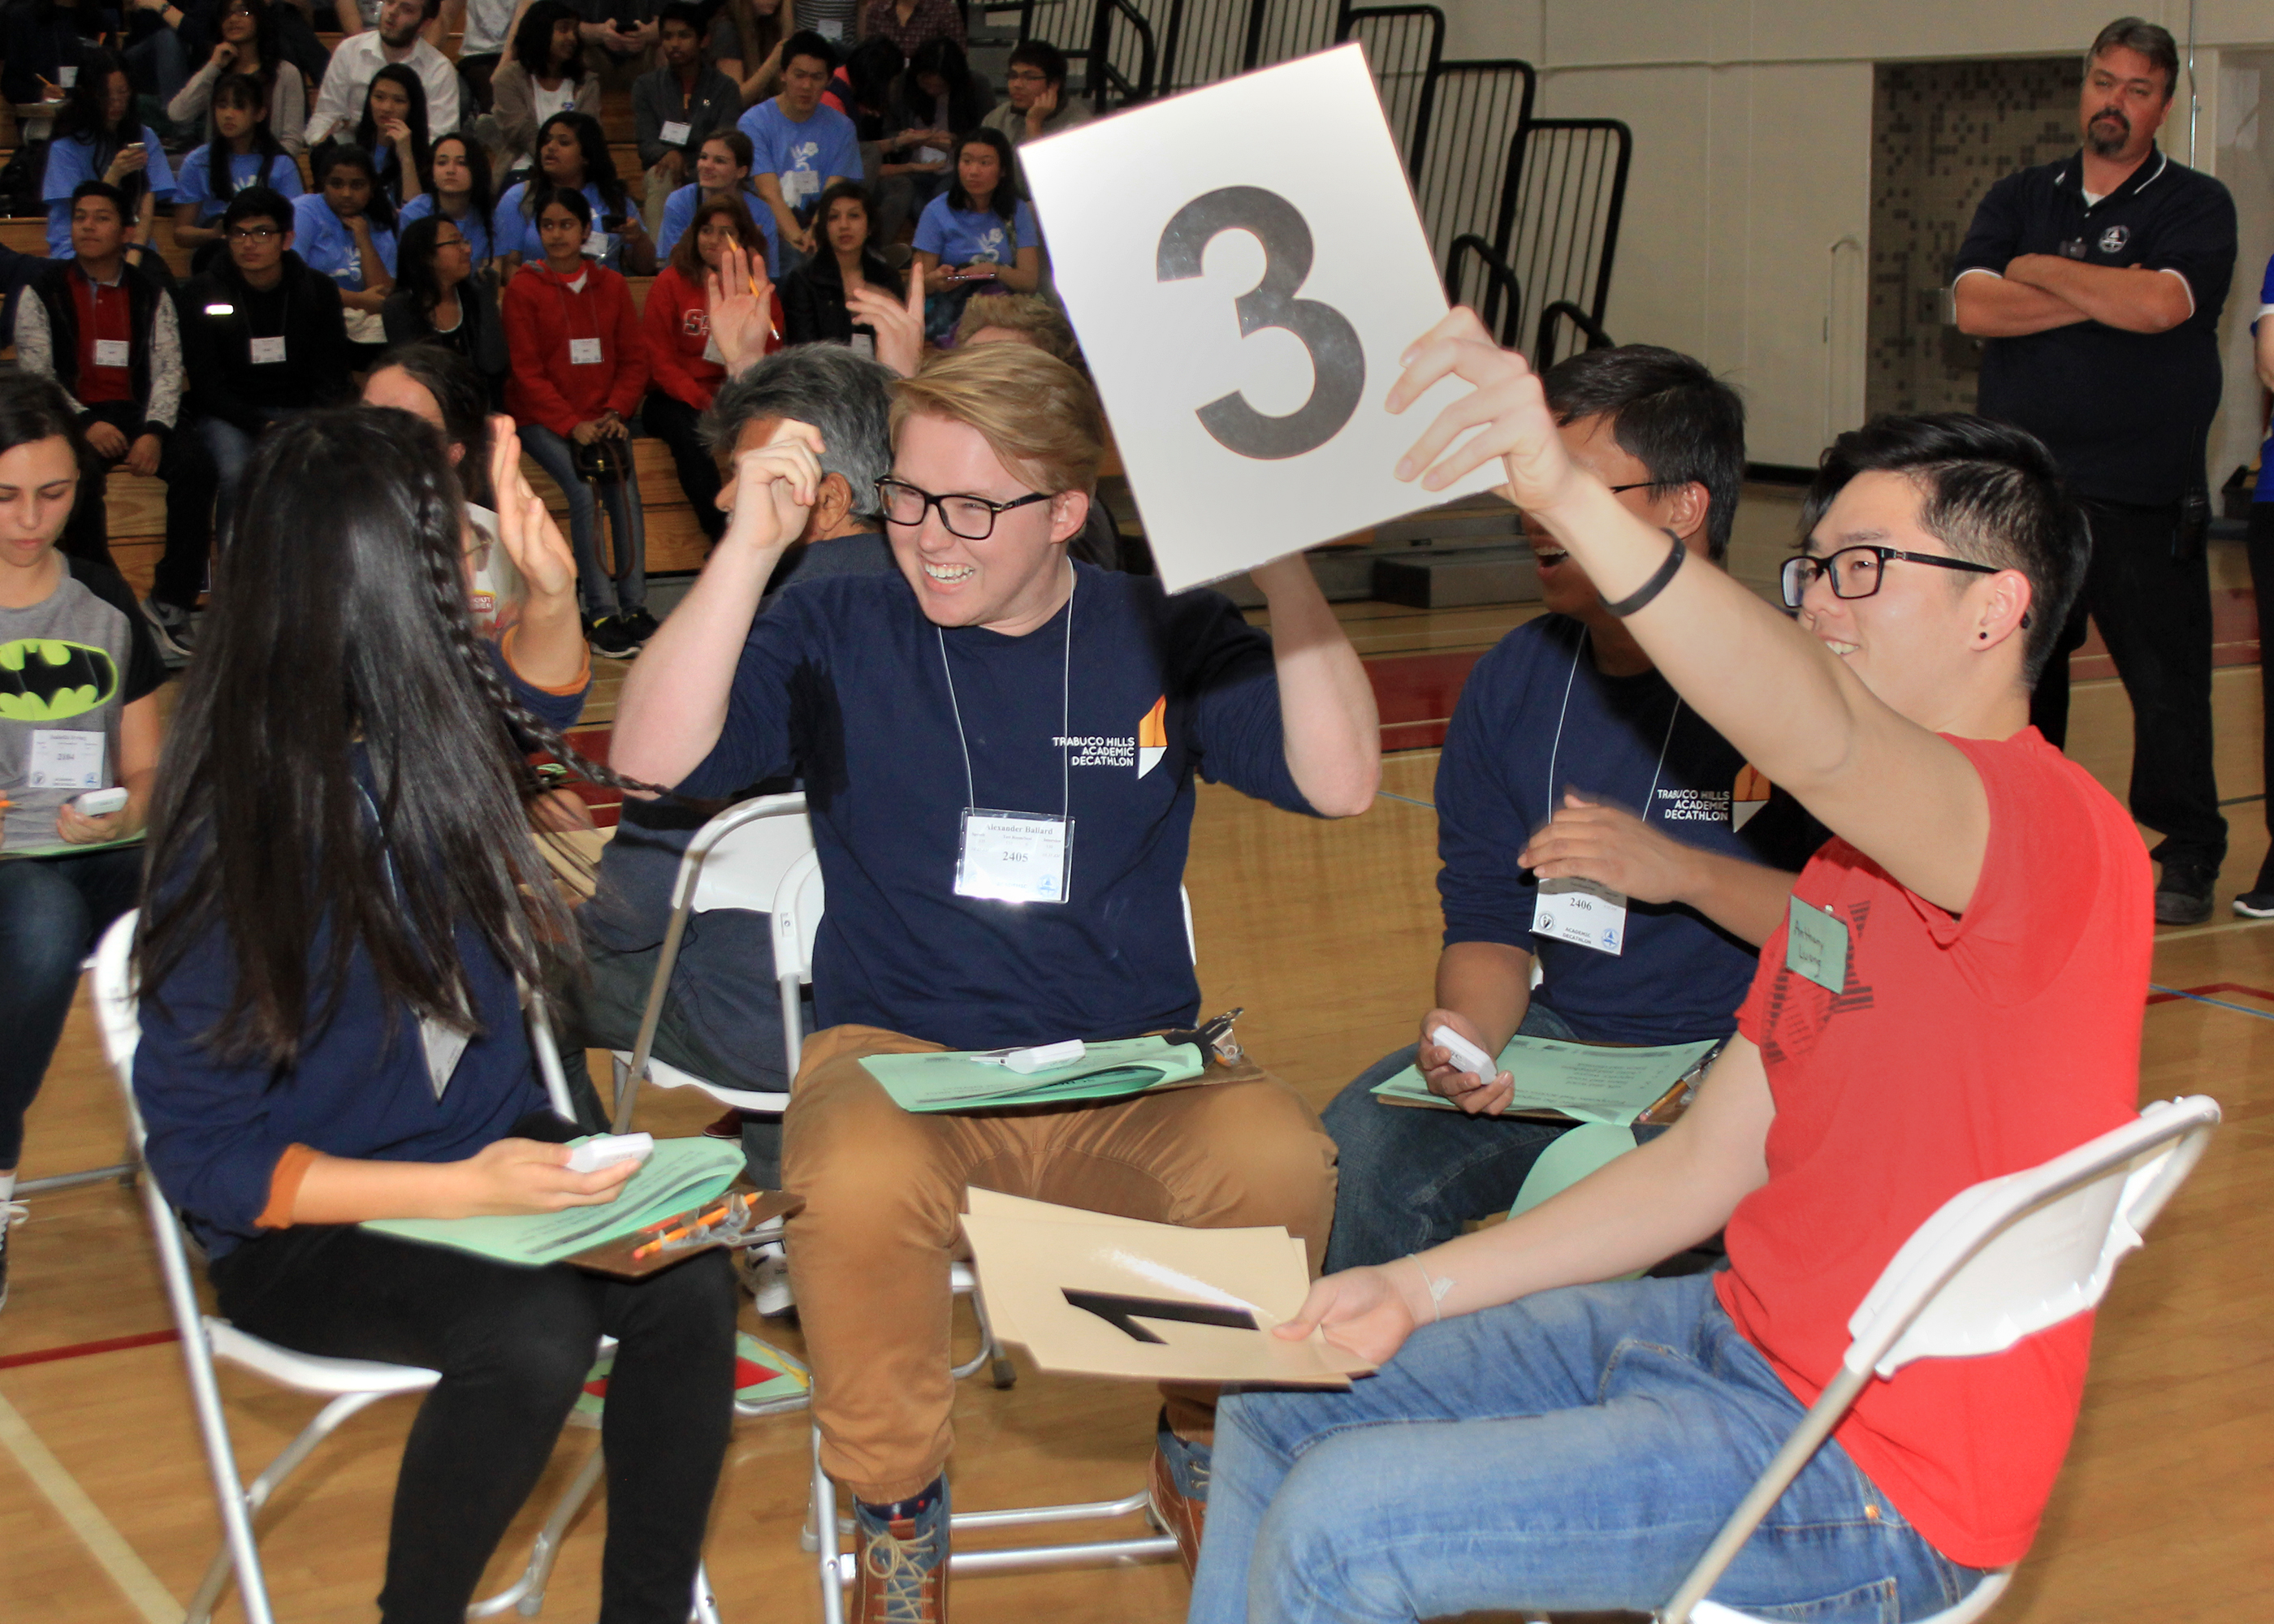 Want to compete in the Academic Decathlon or Pentathlon? OCDE is looking for middle and high school teams